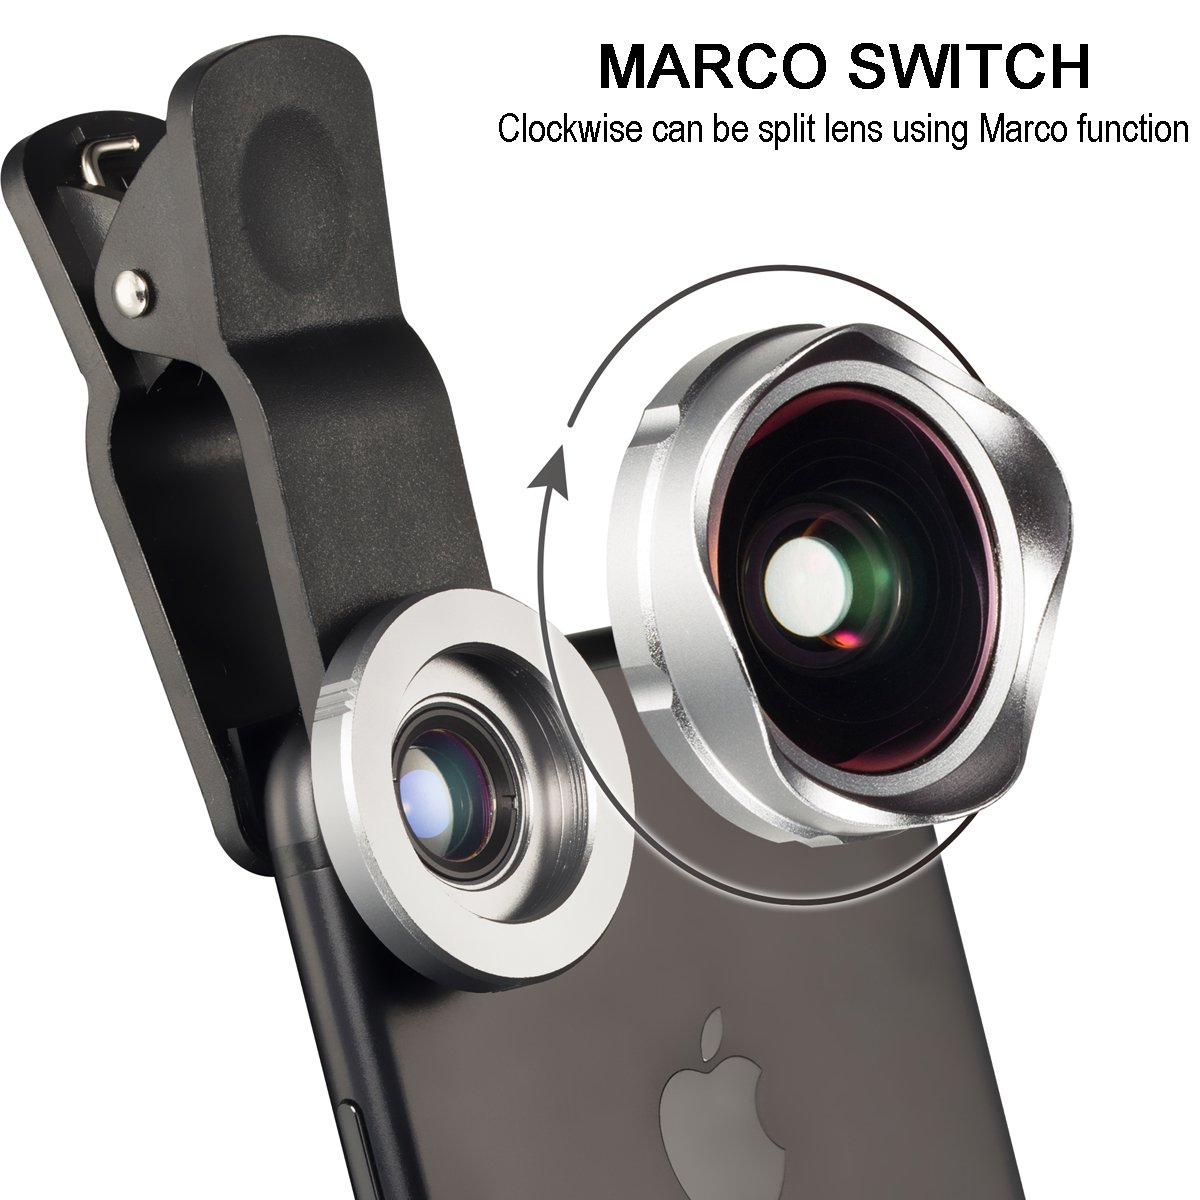 Gray YOUMILE Cell Phone Camera Lens 2 in 1 Clip-on Lens Kit 112/° Super Wide Angle /& 15X Macro Phone Camera Lens Professional HD for iPhone 8 7 6s 6 Plus Samsung Android Smart Phone iPad